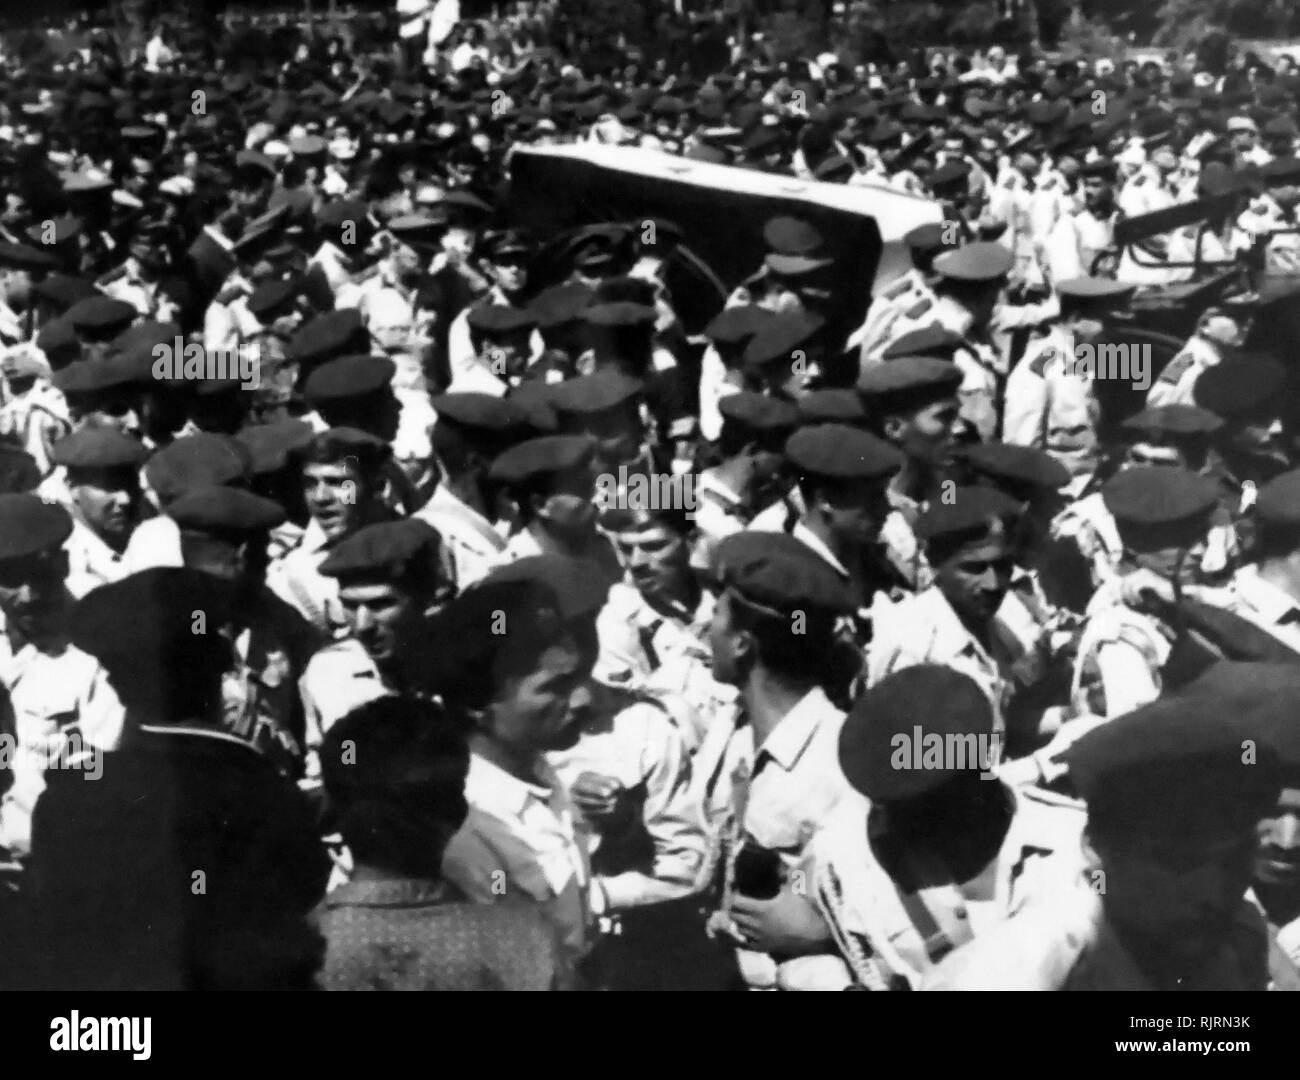 Funeral of Gamal Abdel Nasser (1918 - 1970), President of Egypt, serving from 1956 until his death in 1970. Nasser led the 1952 overthrow of the monarchy and introduced far-reaching land reforms the following year - Stock Image